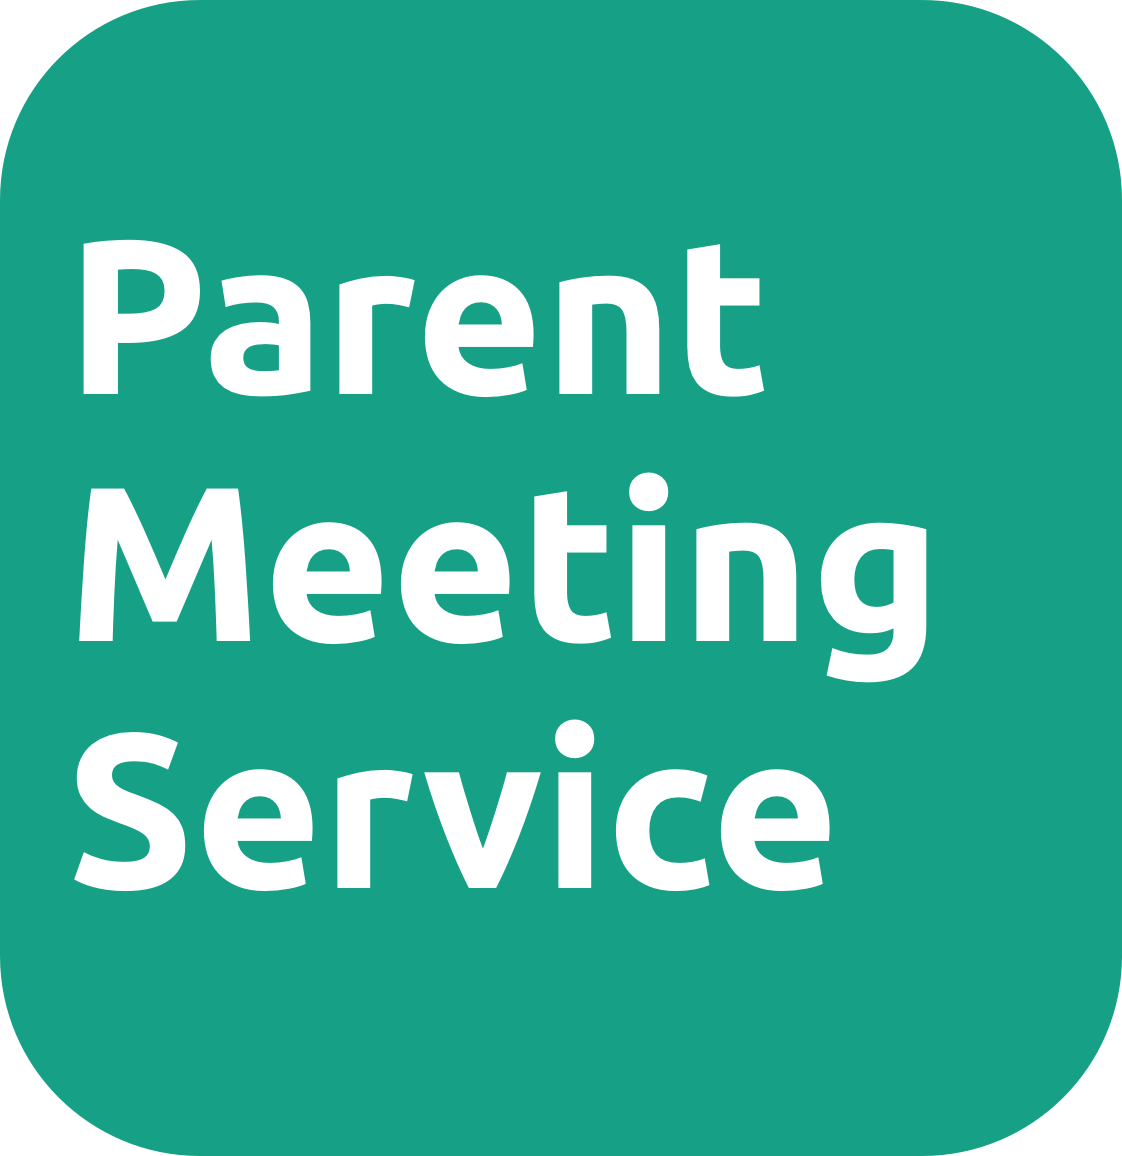 Parent Meeting Service